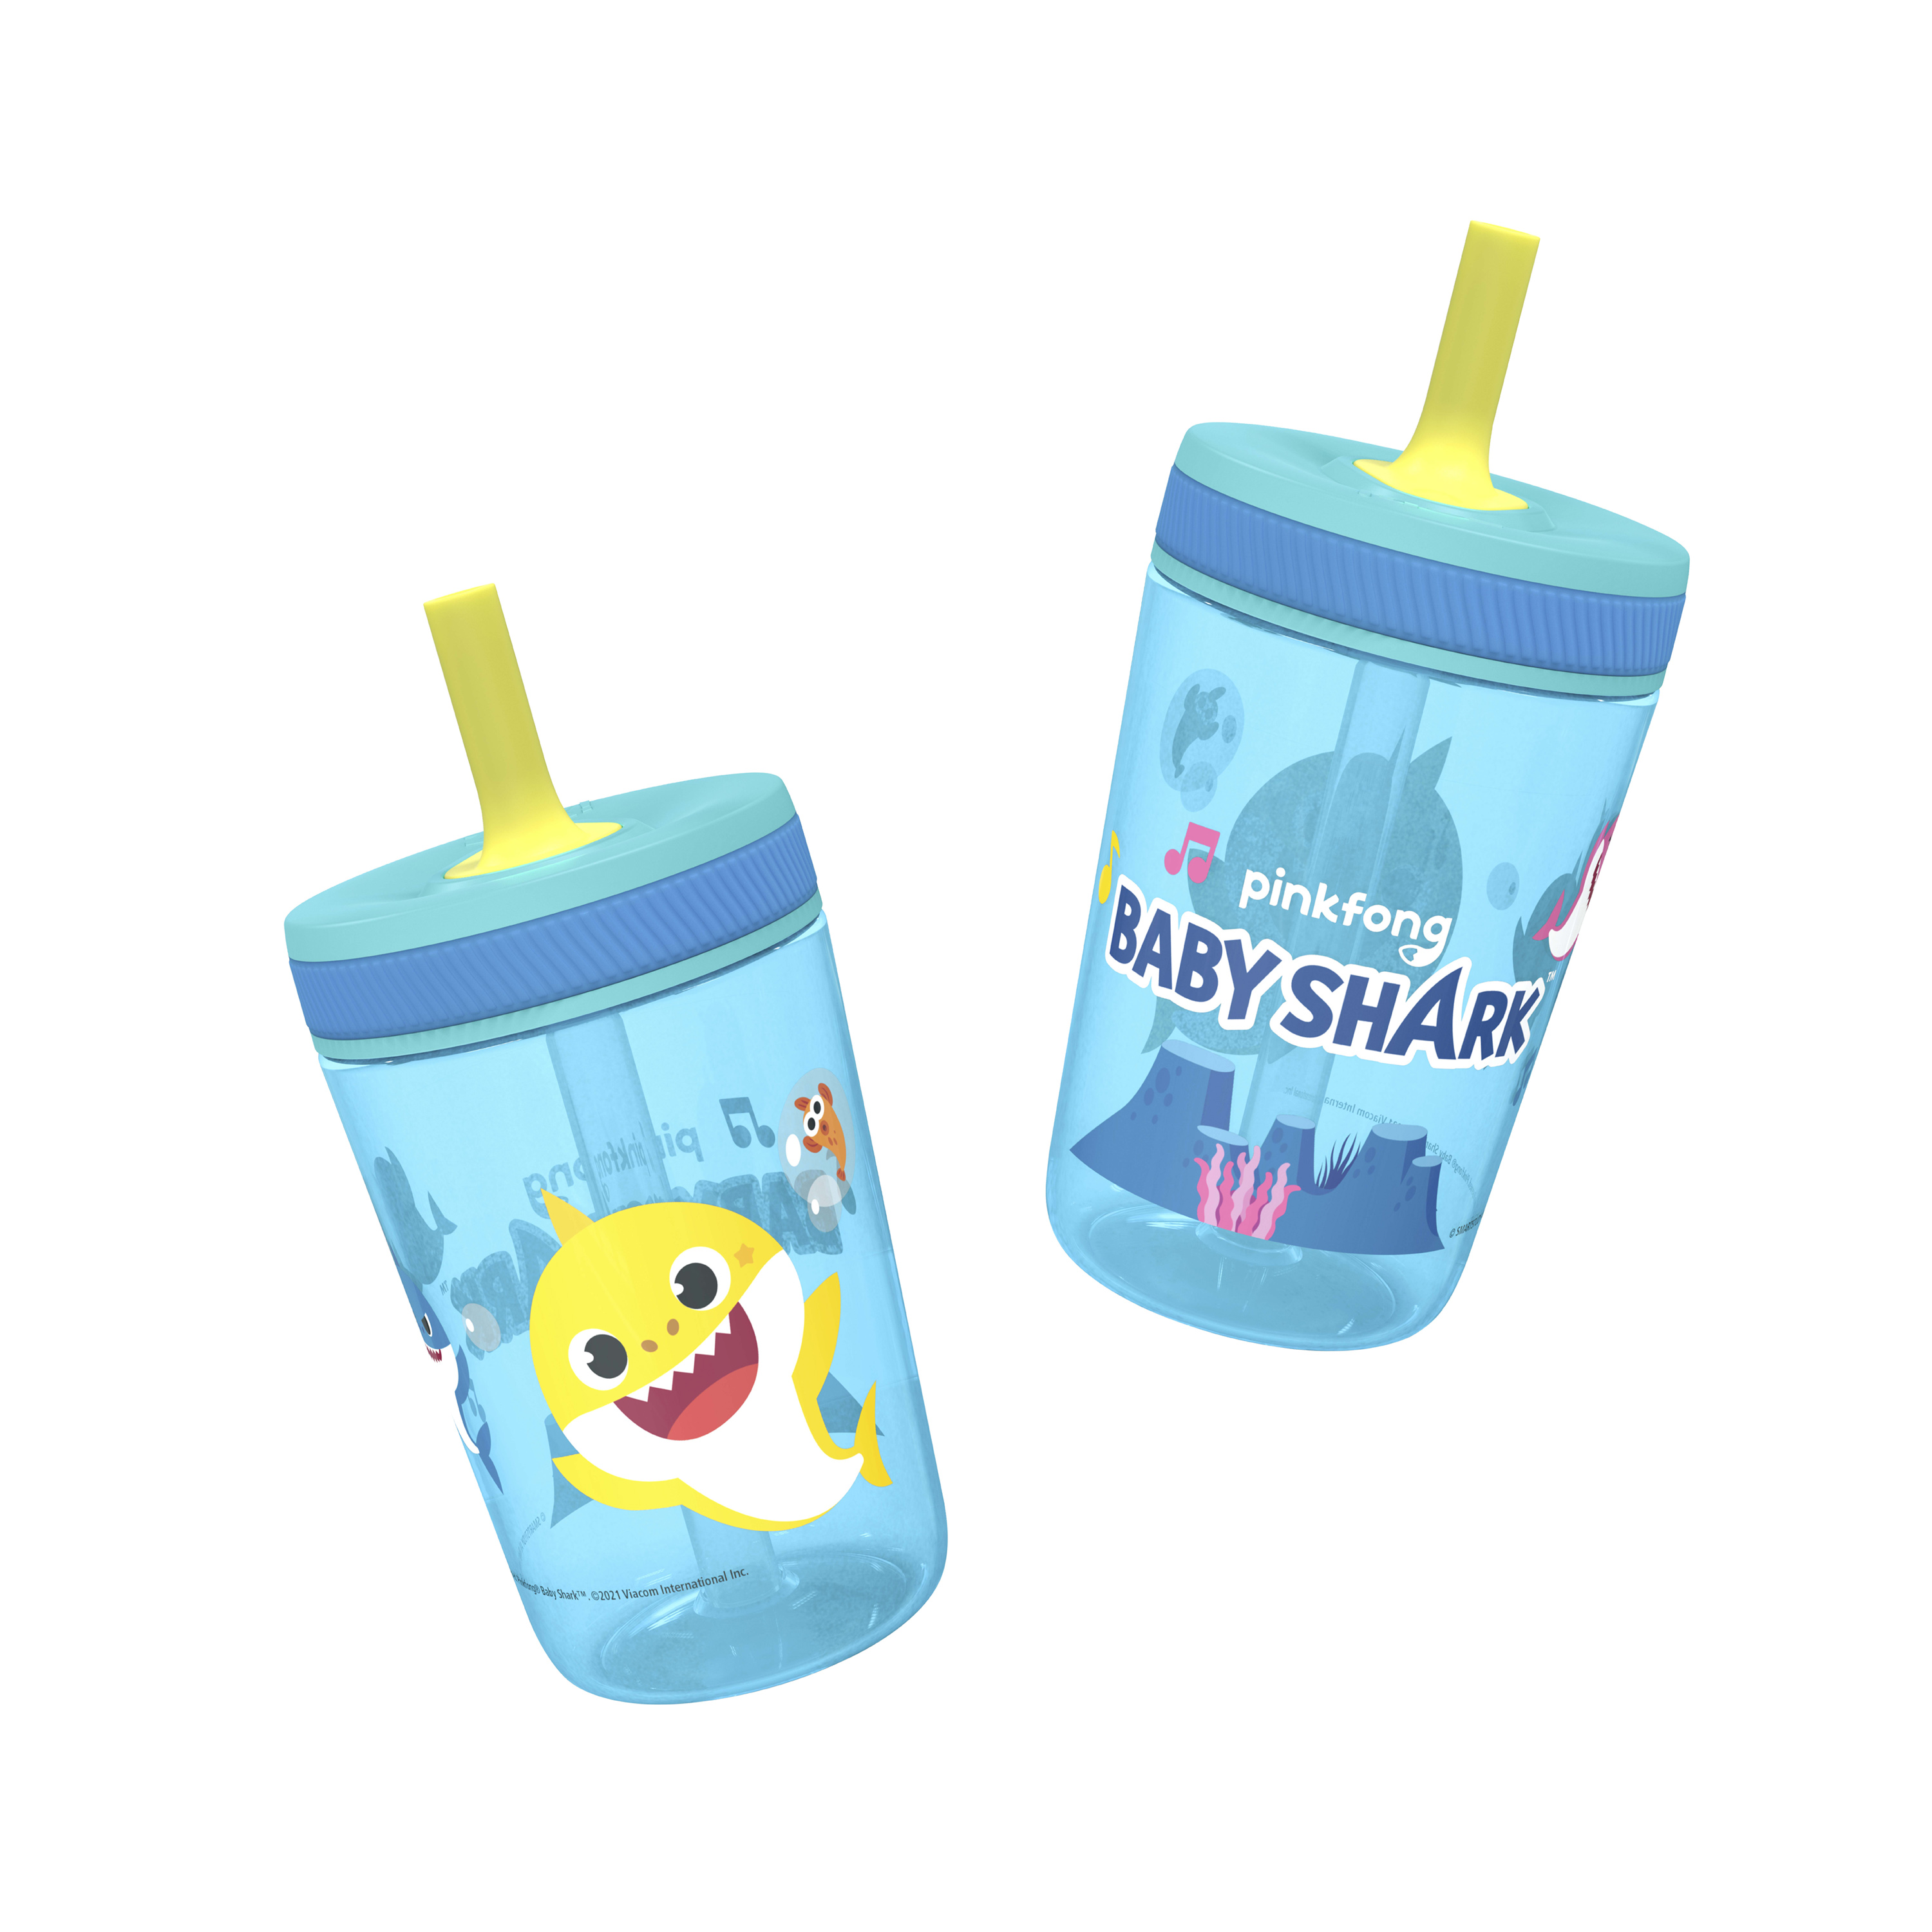 Pinkfong 15  ounce Plastic Tumbler with Lid and Straw, Baby Shark, 2-piece set slideshow image 4